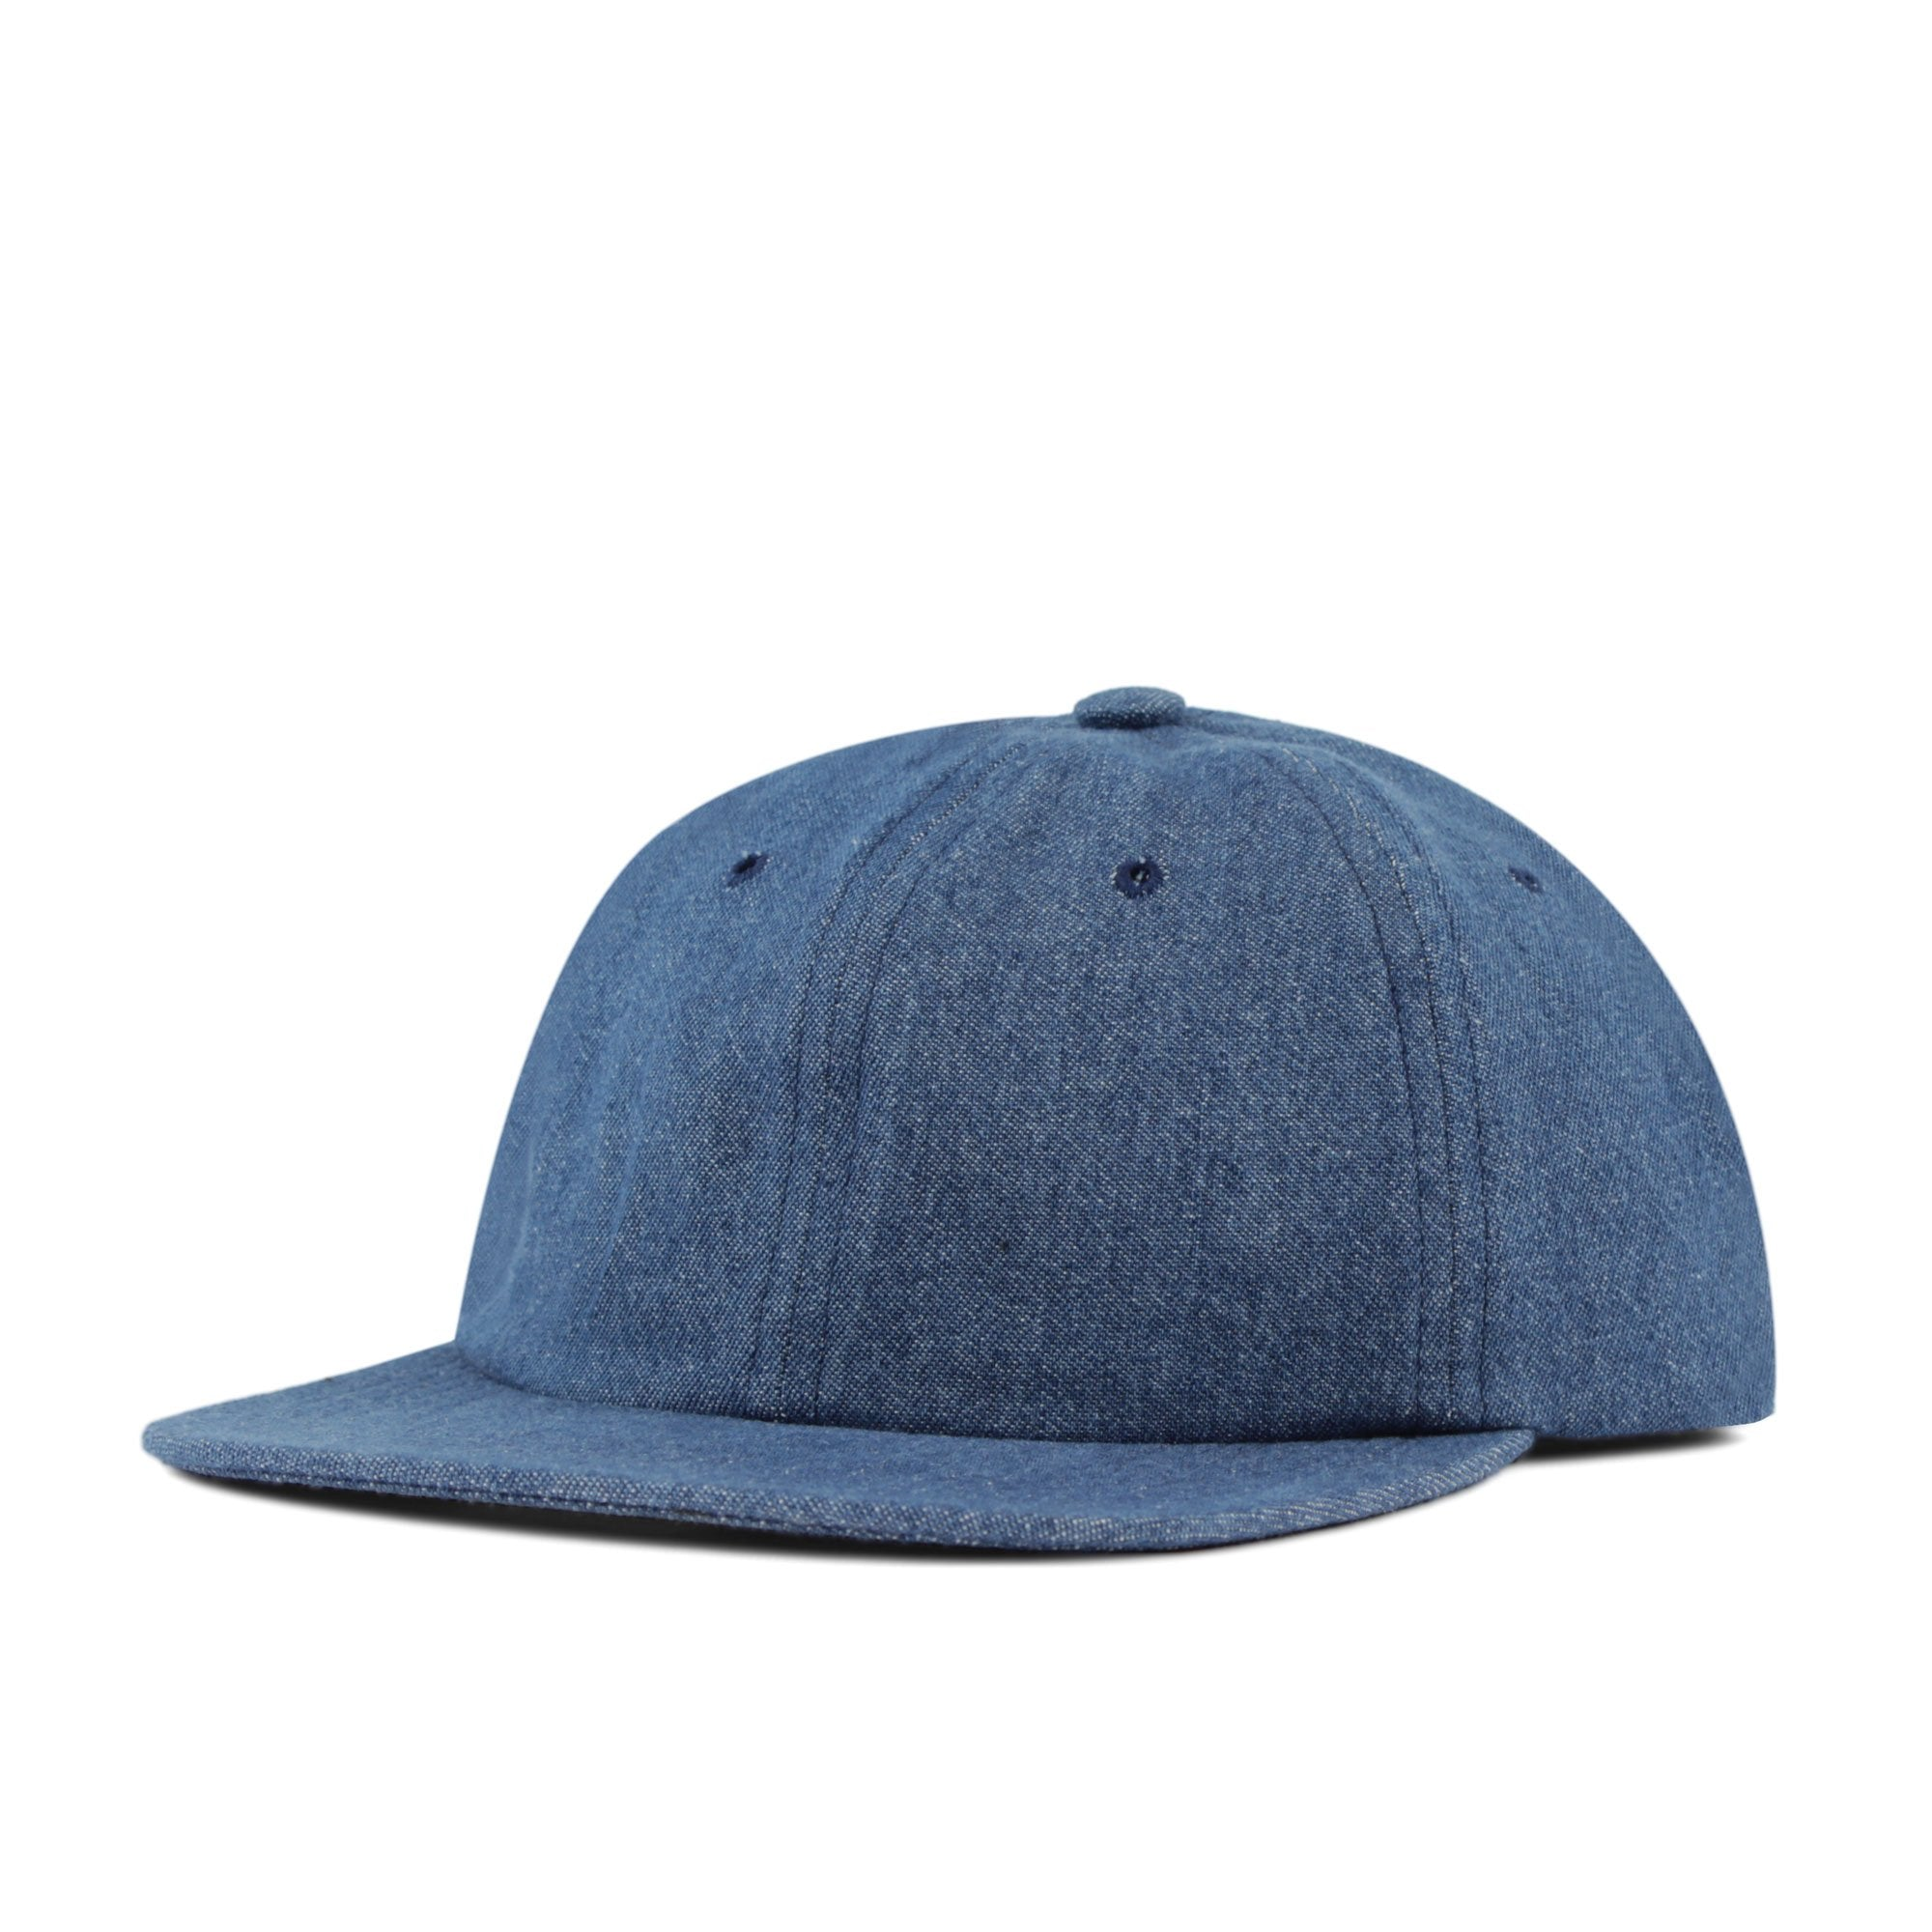 Hotel Blue Arch Cap Product Photo #1